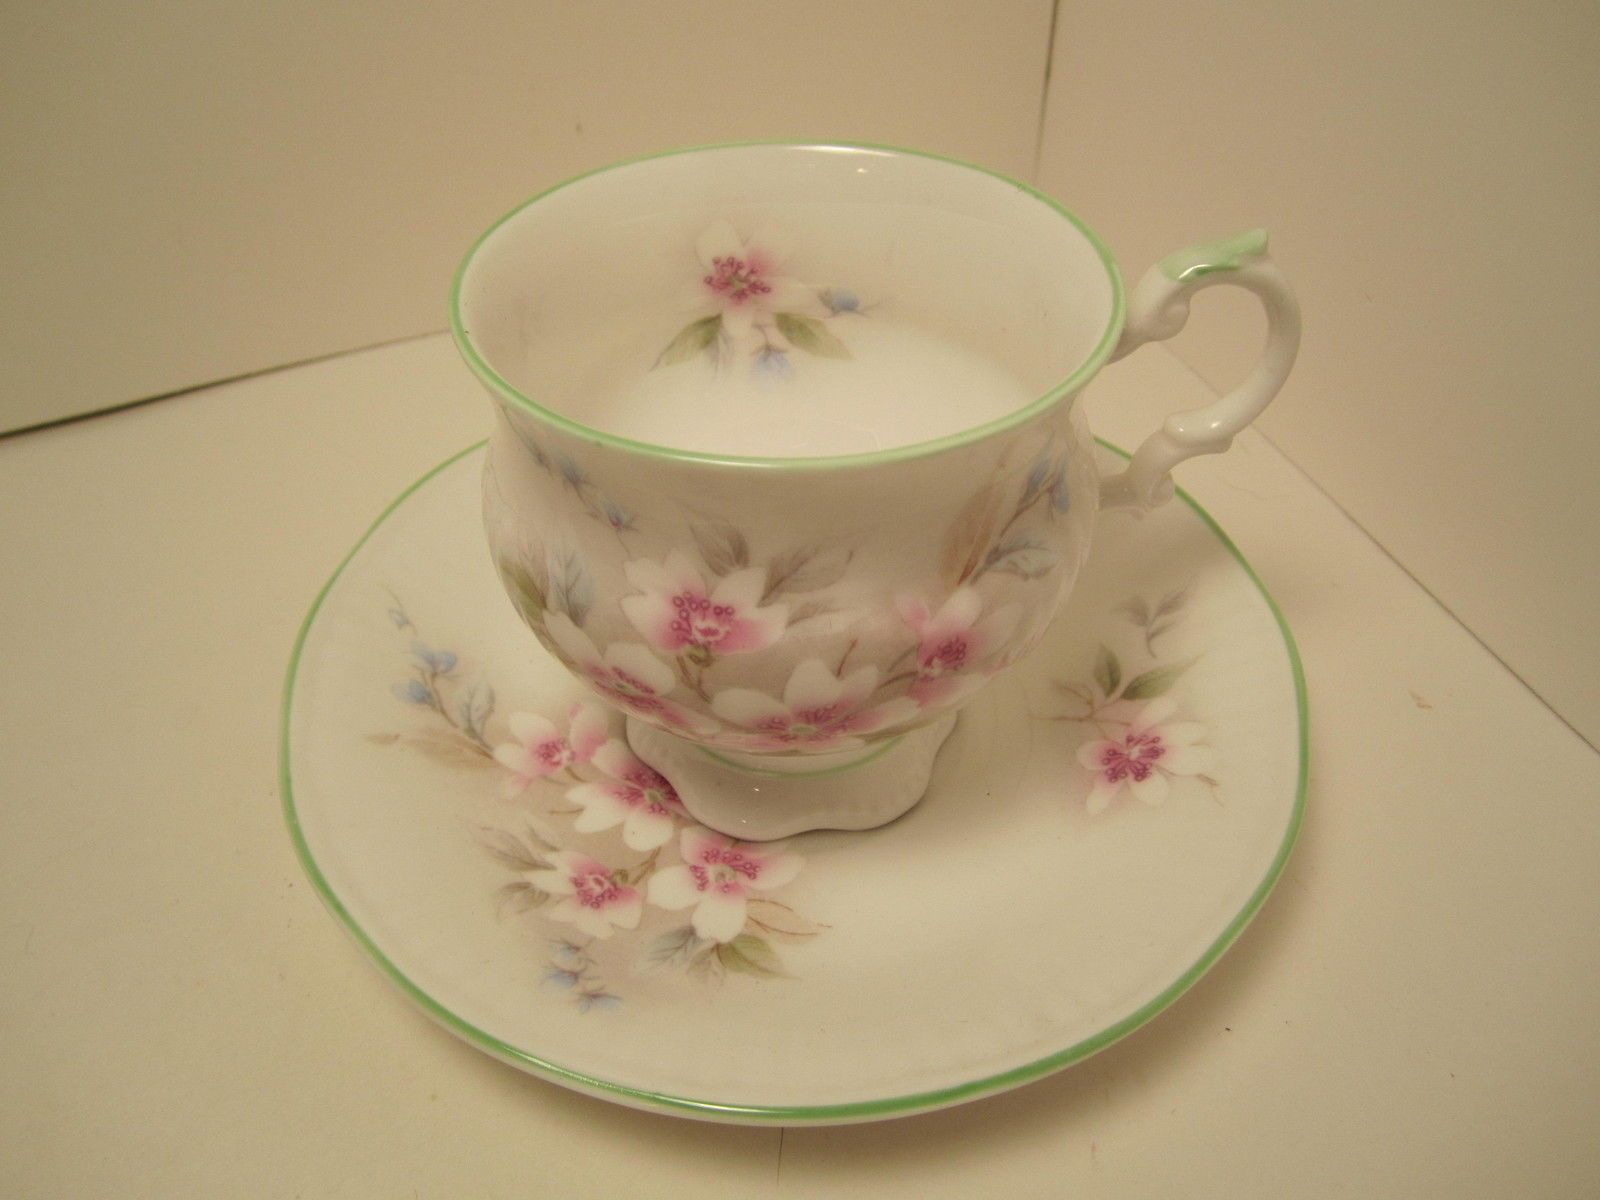 FOR SALE TODAY THIS PRETTY ELIZABETHAN CHINA TEA CUP & SAUCER WHITE WITH PINK FLOWERS AND GREEN TRIM ON CUP SAUCER AND HANLE MADE IN ENGLAND IN GOOD VINTAGE CONDITION NO CHIPS OR CRACKS PLEASE TAKE A LOOK! Posted with eBay Mobile